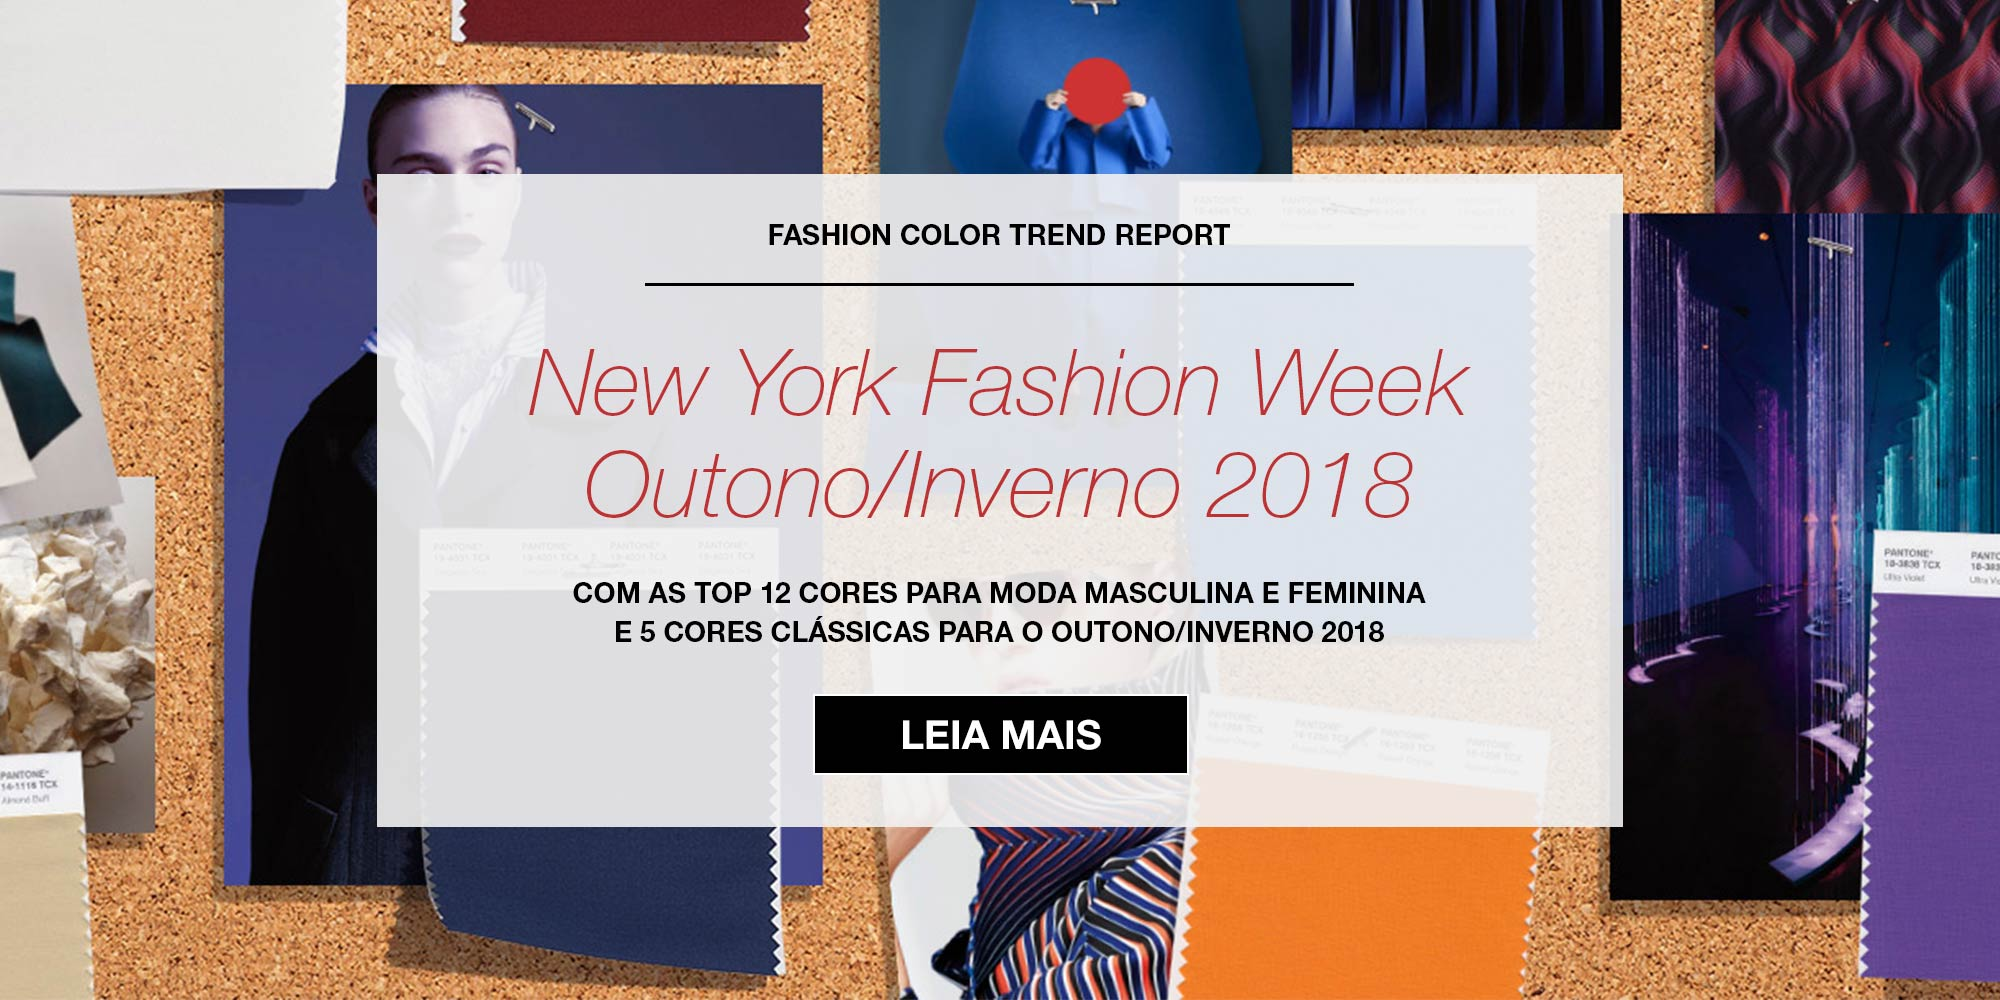 FCR - New York Fashion Week Outono Inverno 2018